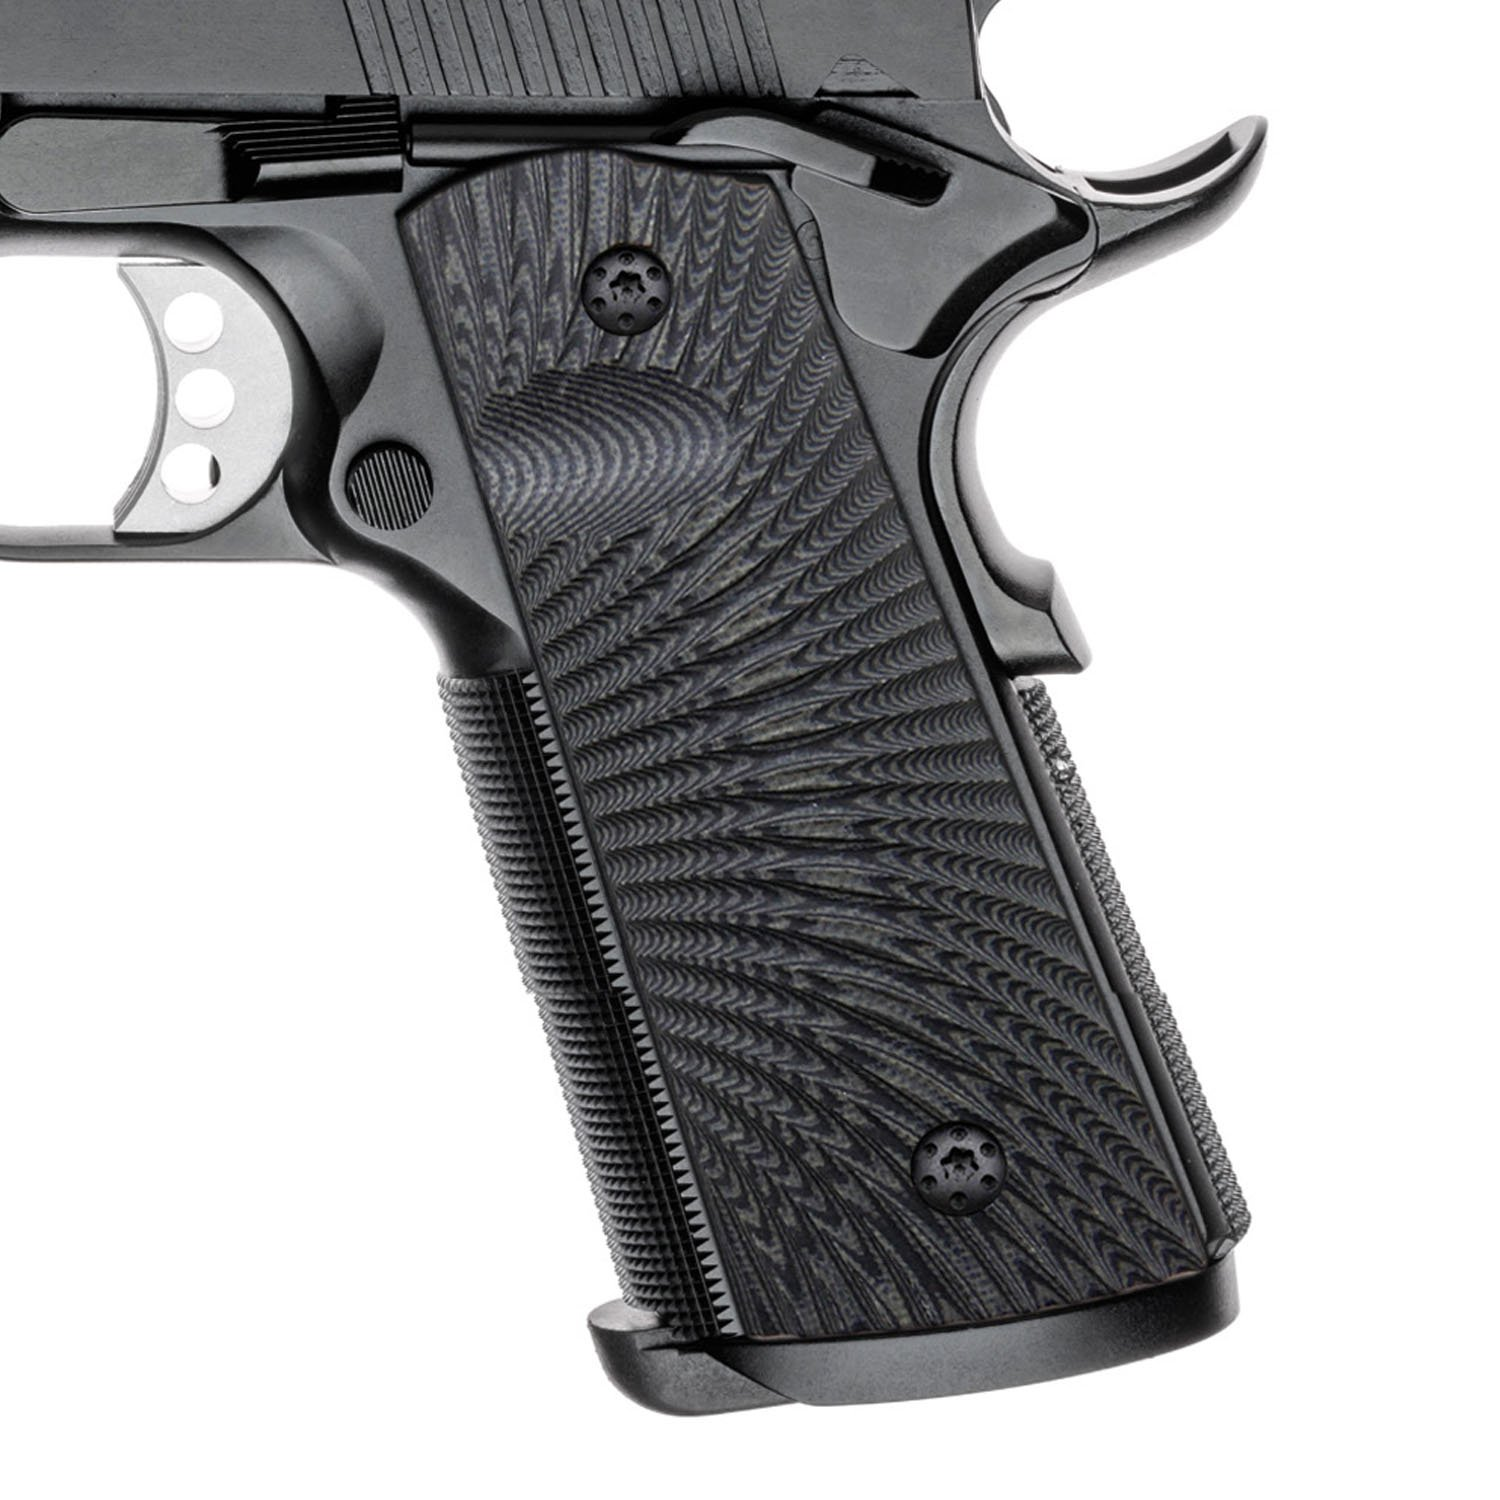 Cool Hand 1911 Grips, Magwell Cut, Full Size(Government/Commander), Sunburst Texture,G10, Ambi Safety Cut Grey/Black by Cool Hand